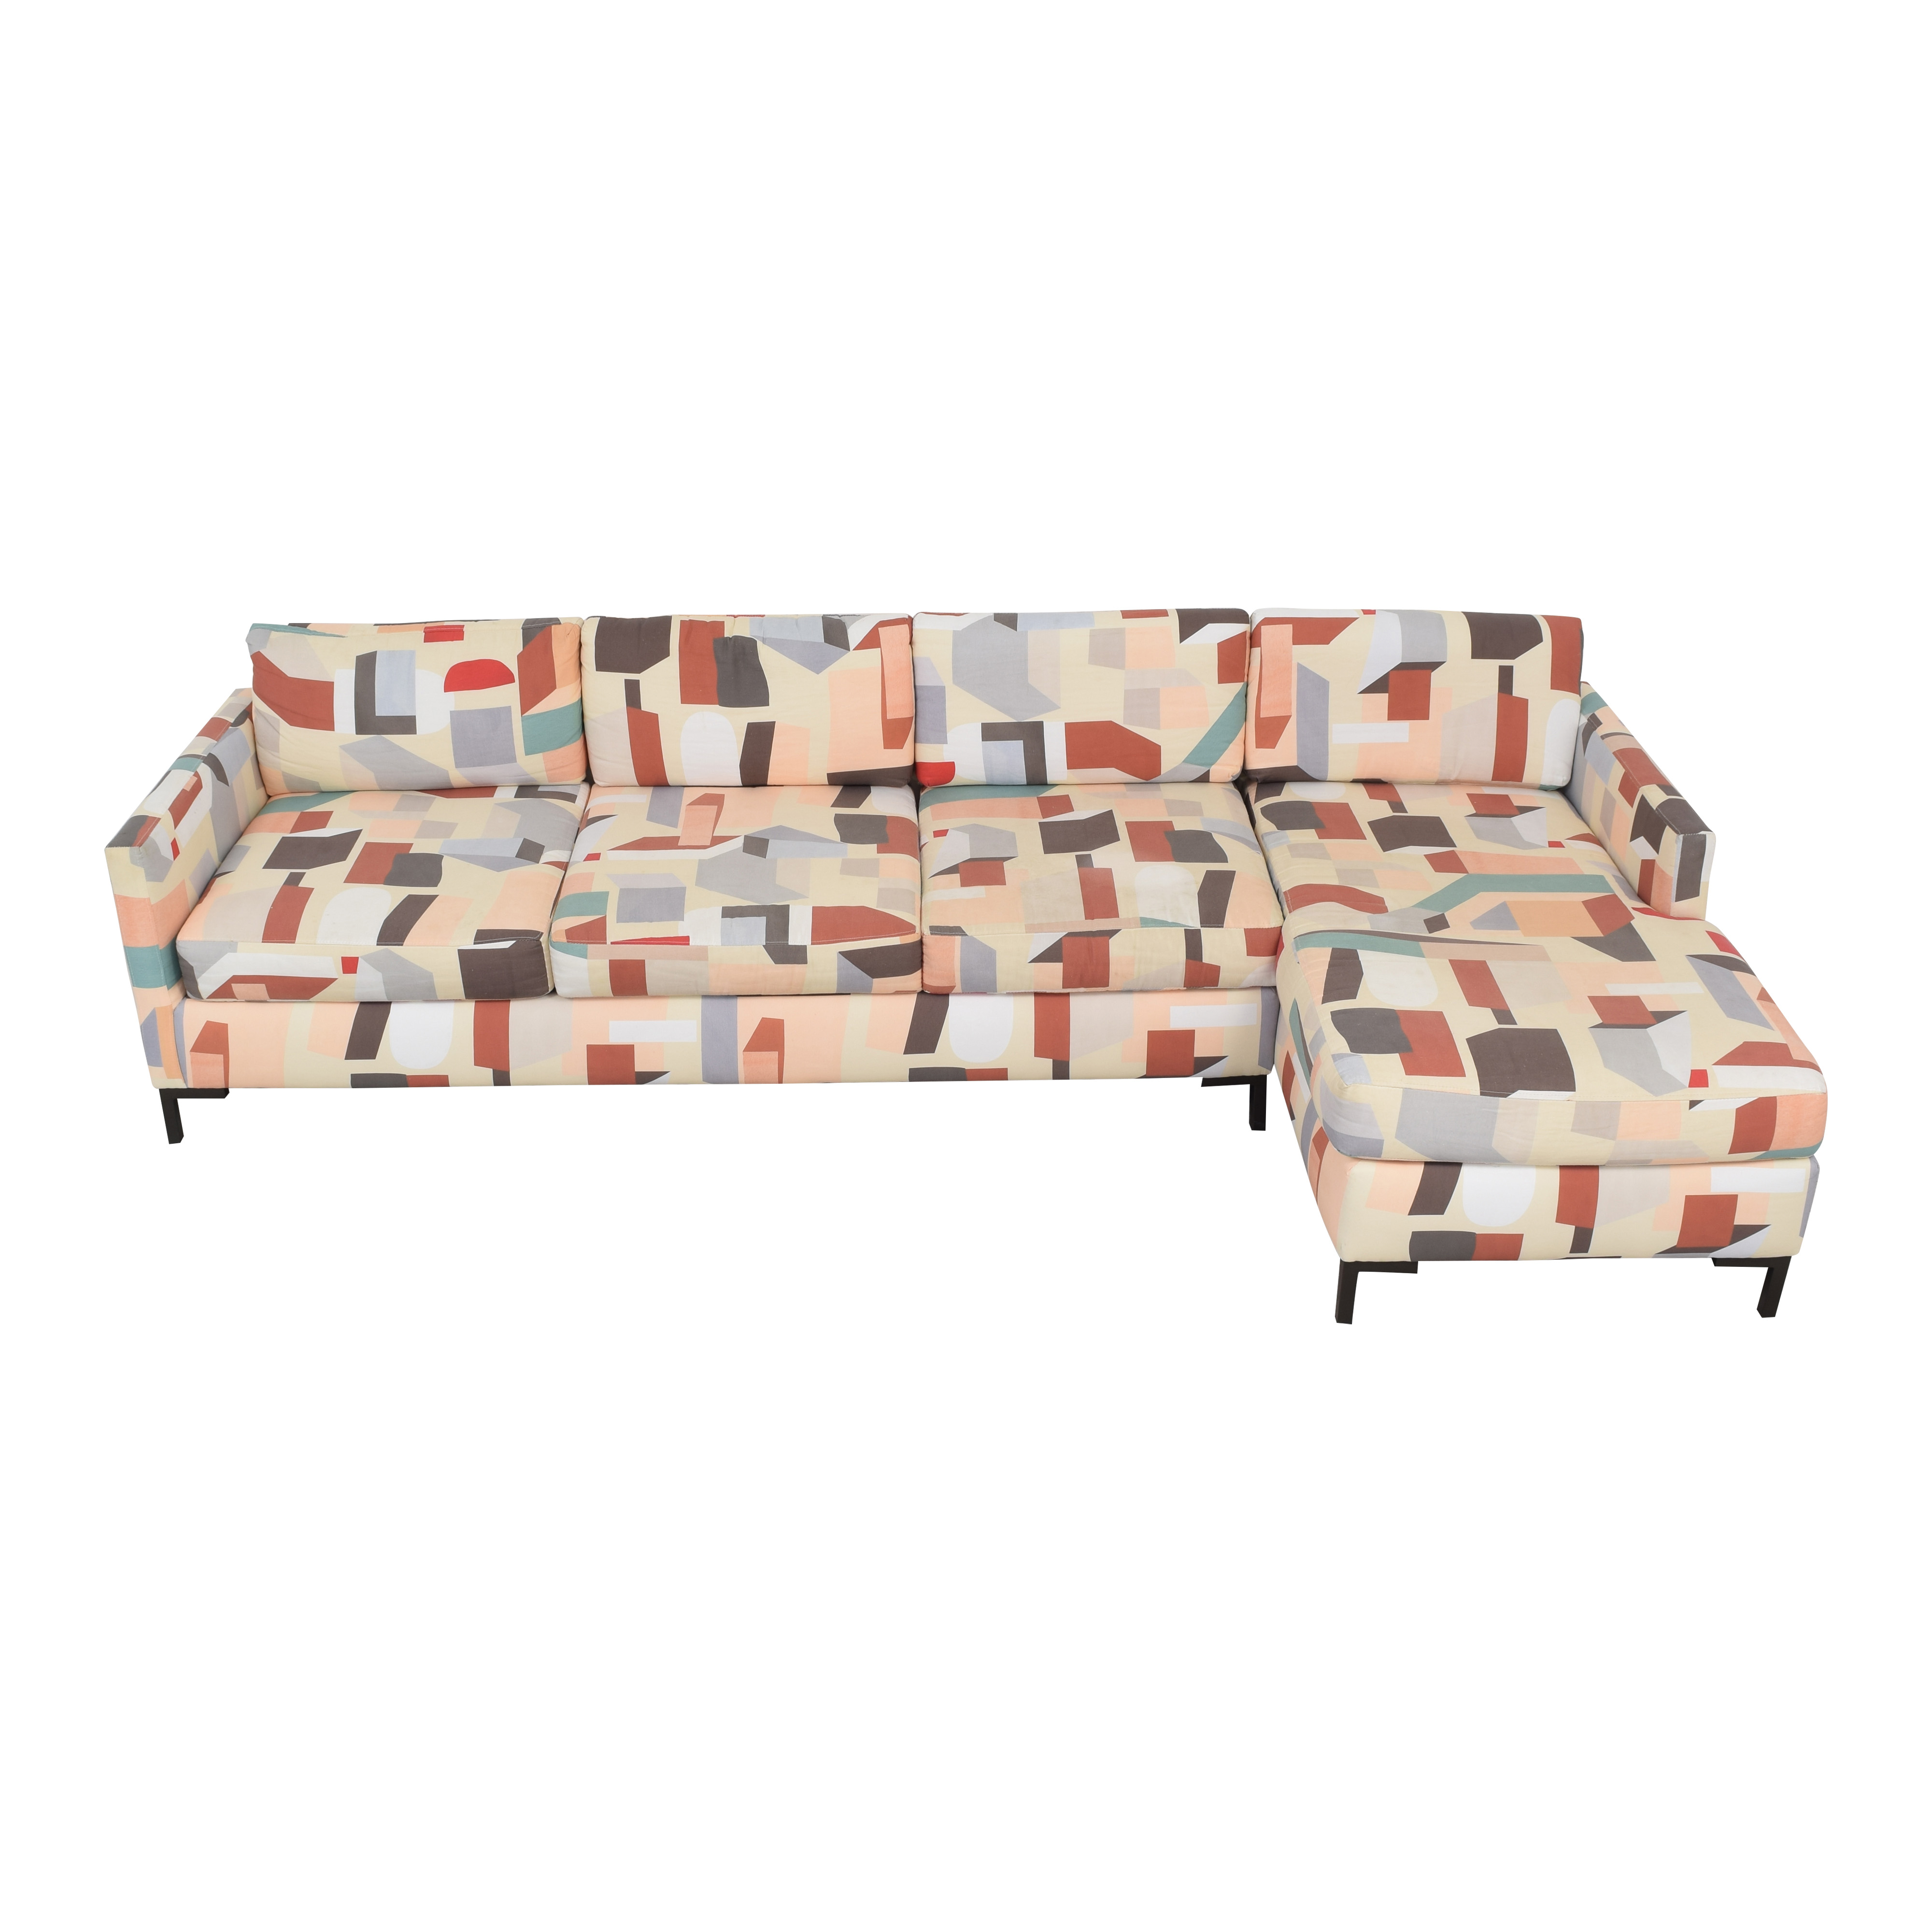 The Inside The Inside Modern Right Facing Sectional on sale